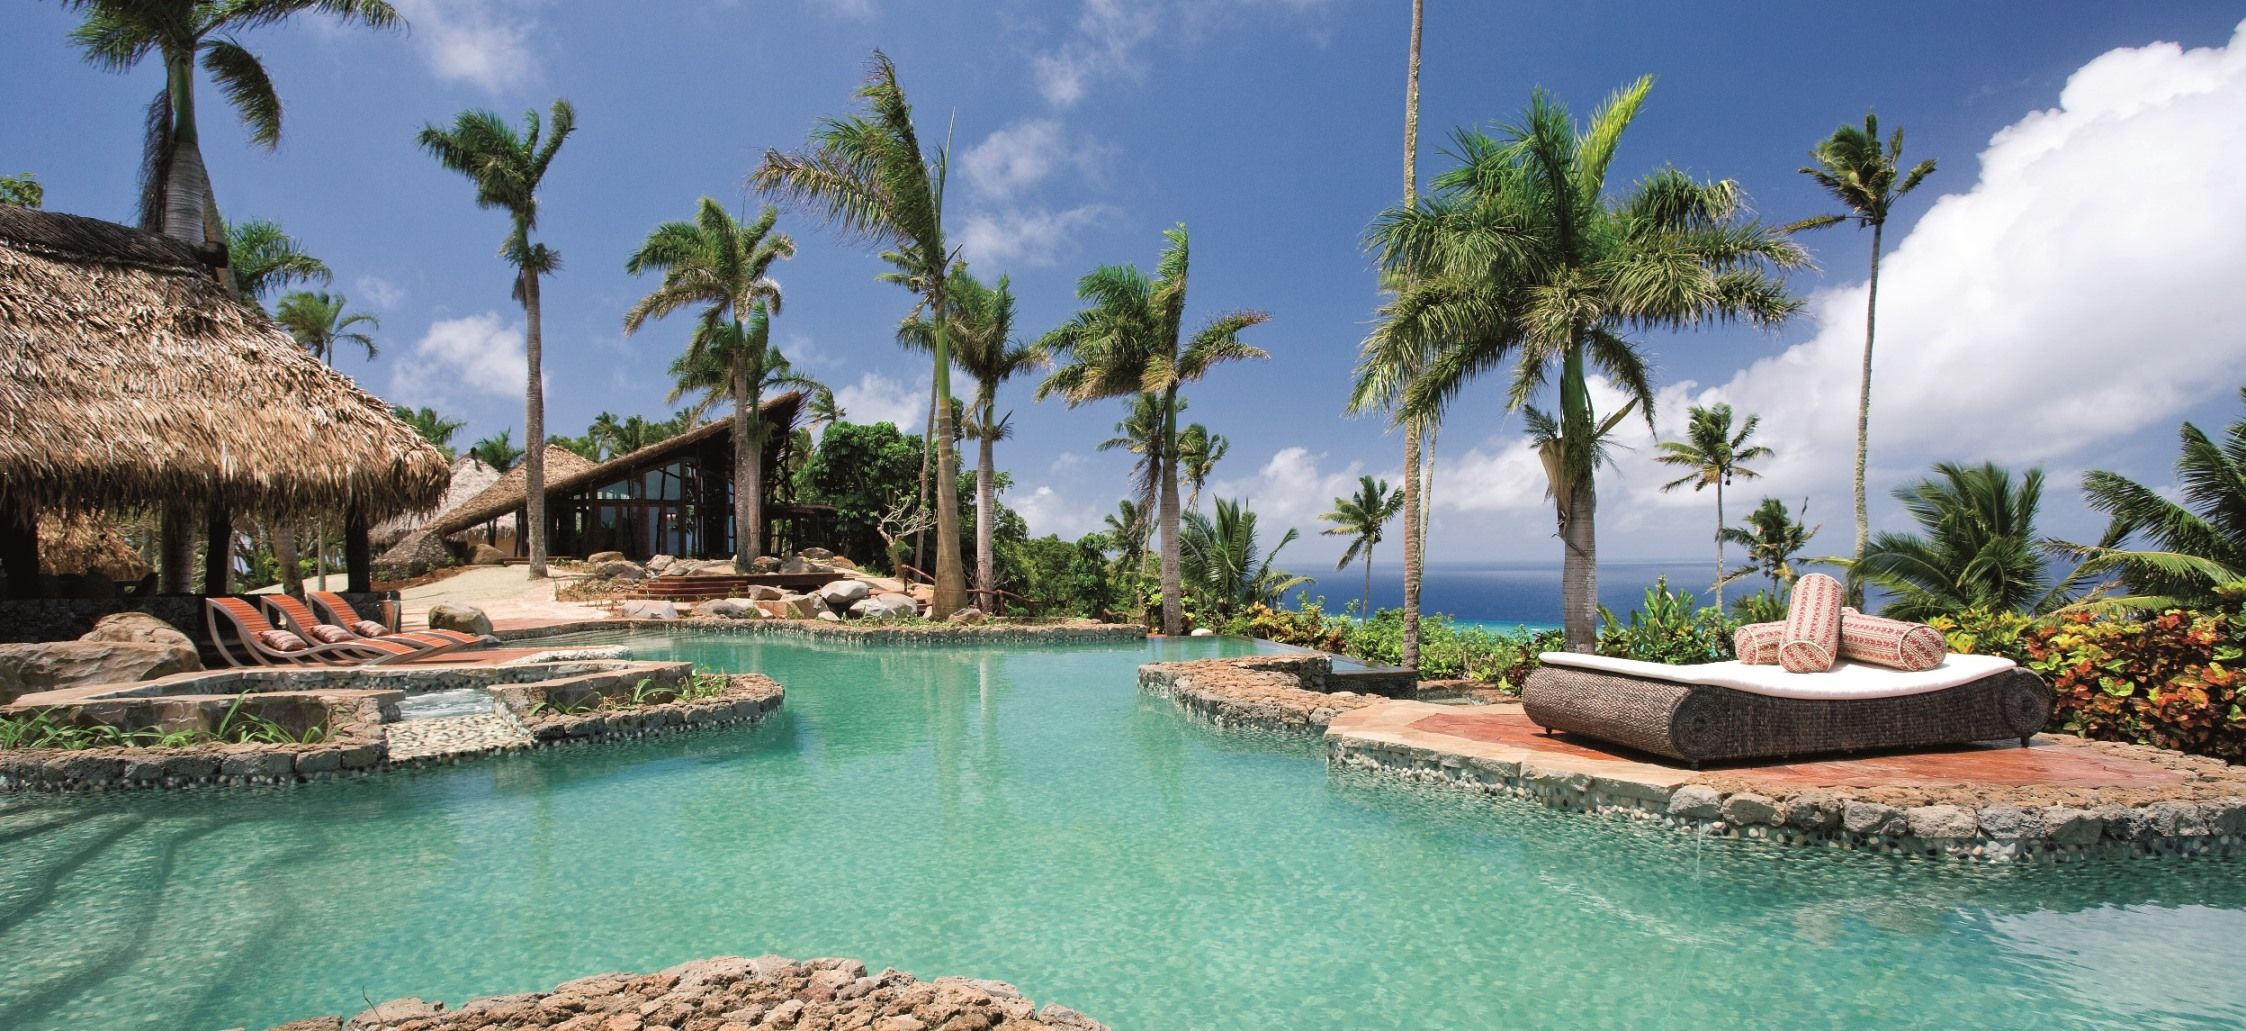 Laucala is rated among the top three luxury island resorts in the world